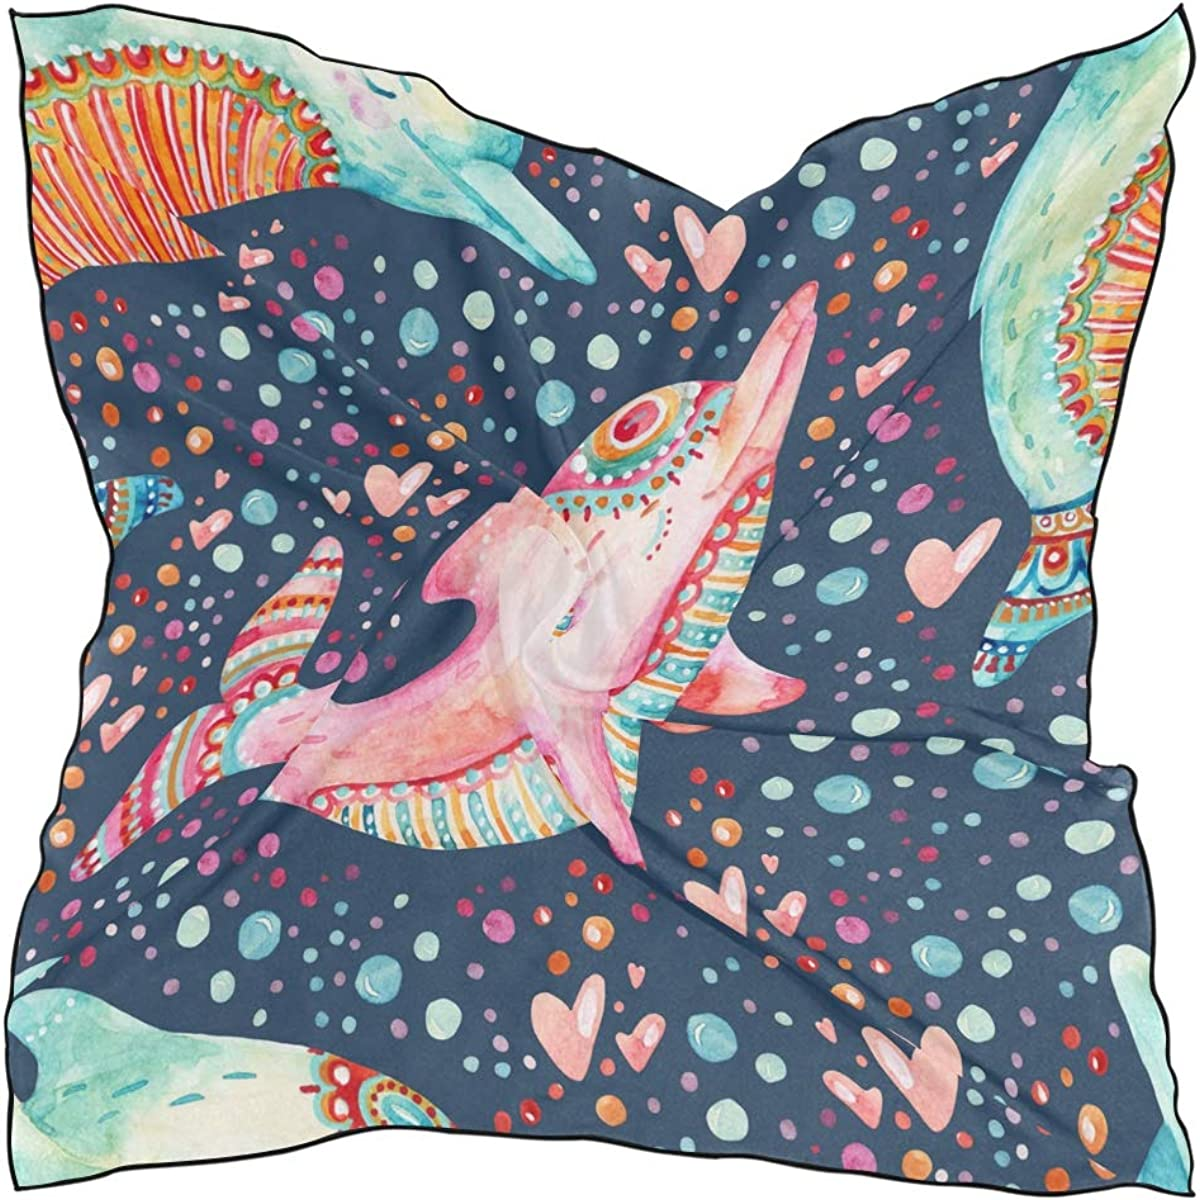 XLING Fashion Square Scarf Watercolor Lovely Ocean Sea Dolphins Lightweight Sunscreen Scarves Muffler Hair Wrap Headscarf Neckerchief for Women Men